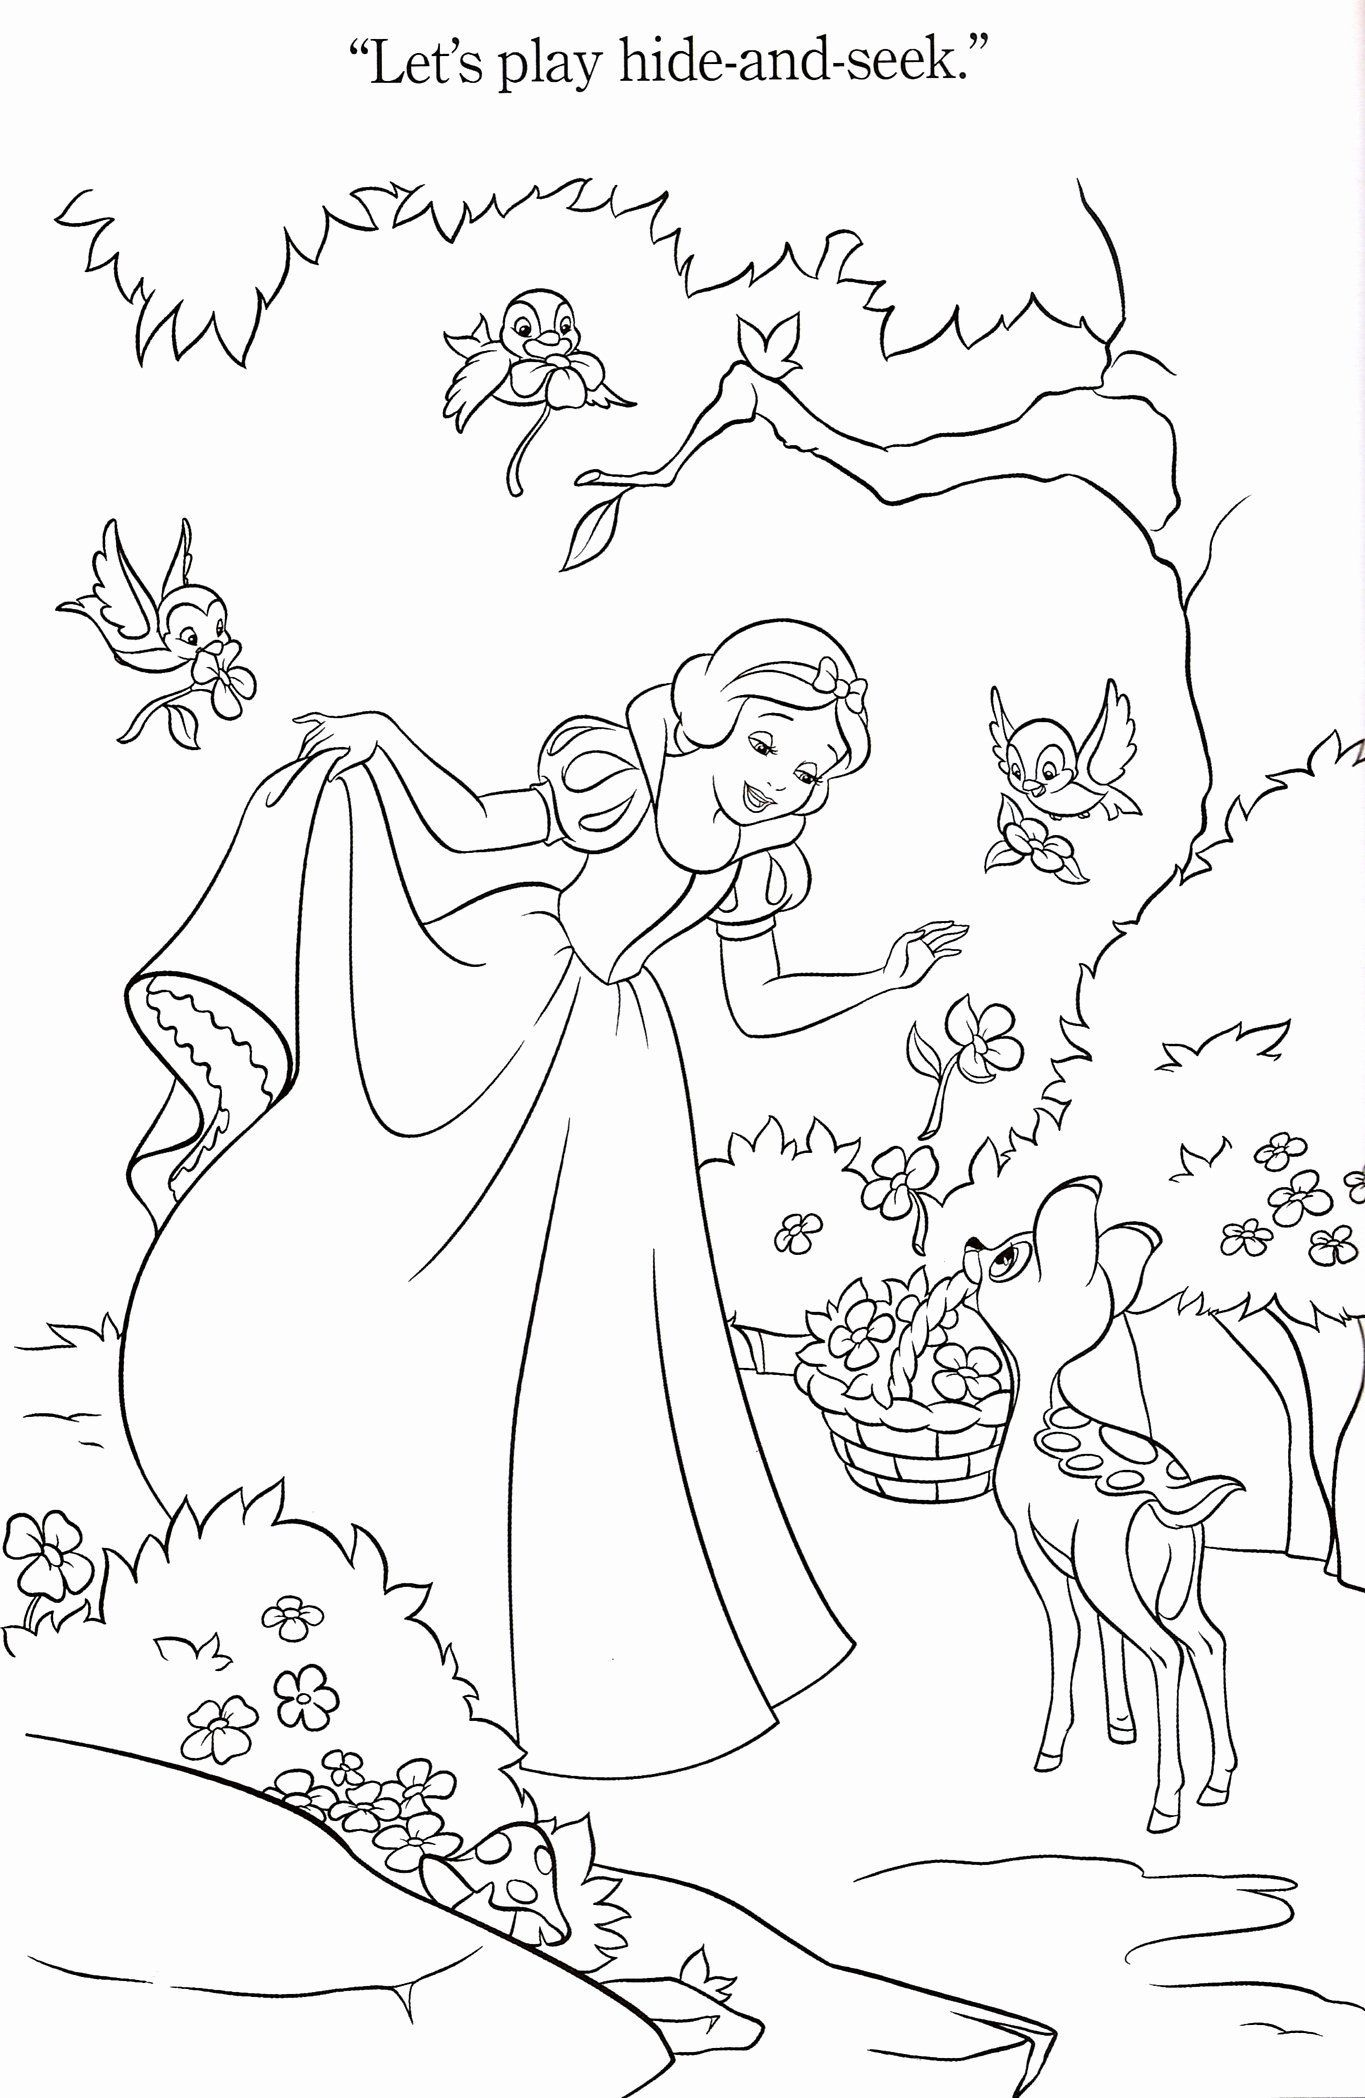 Disney Spring Coloring Pages Best Of 1000 Images About Snow White And The 7 Dwar Disney Princess Coloring Pages Disney Coloring Pages Cinderella Coloring Pages